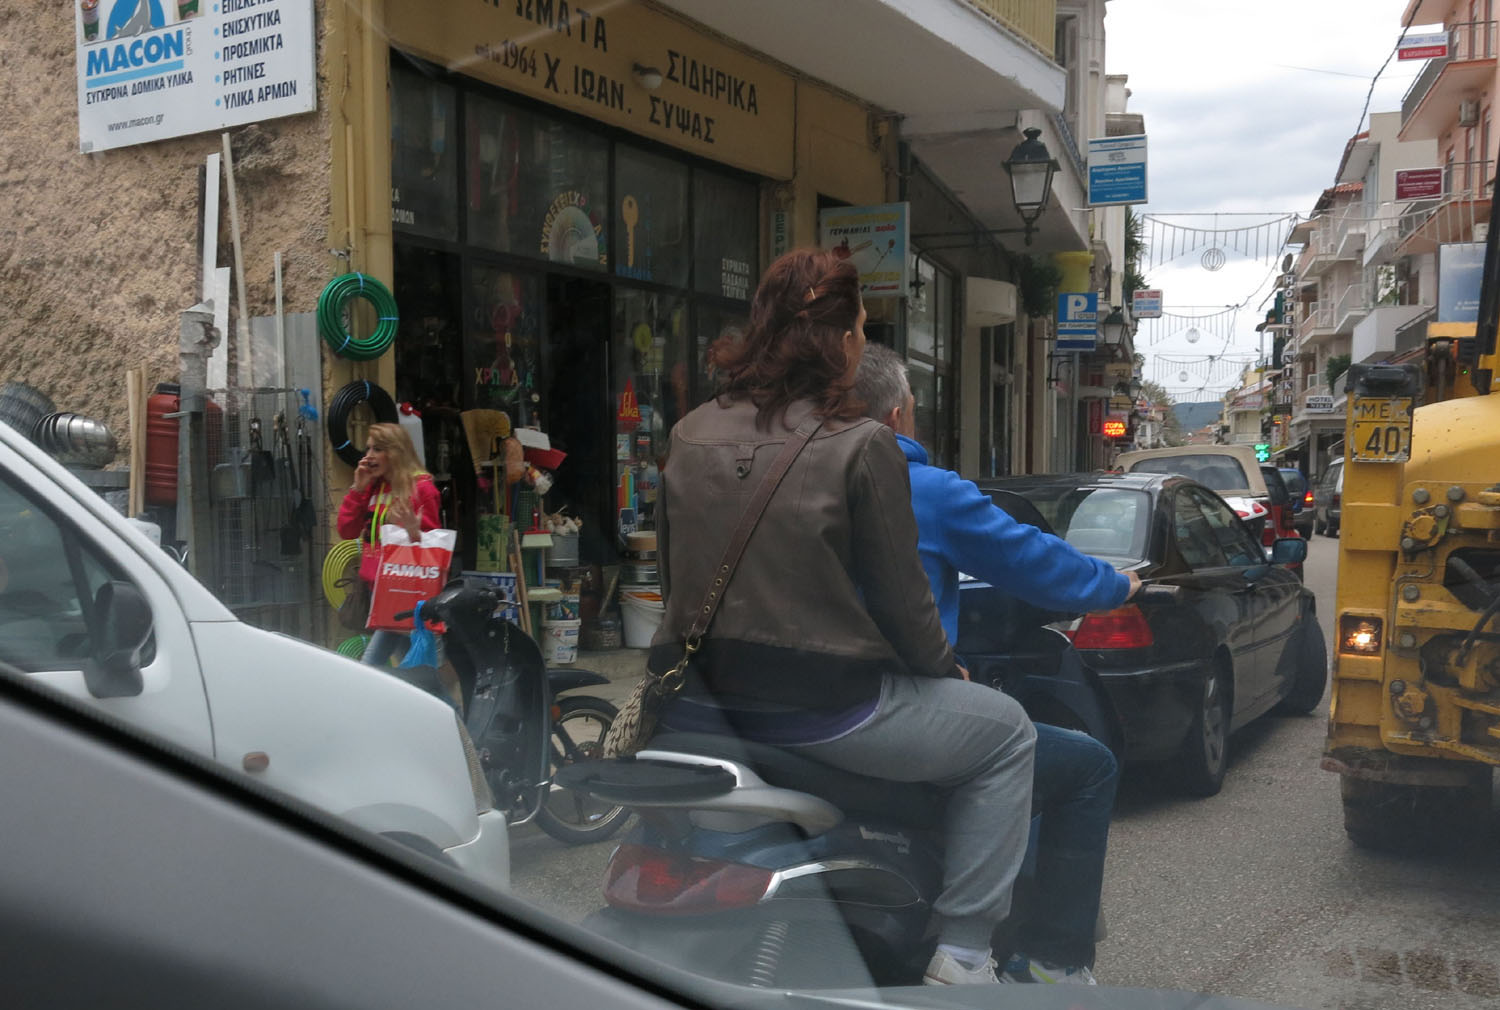 Greece-On-The-Road-City-Streets